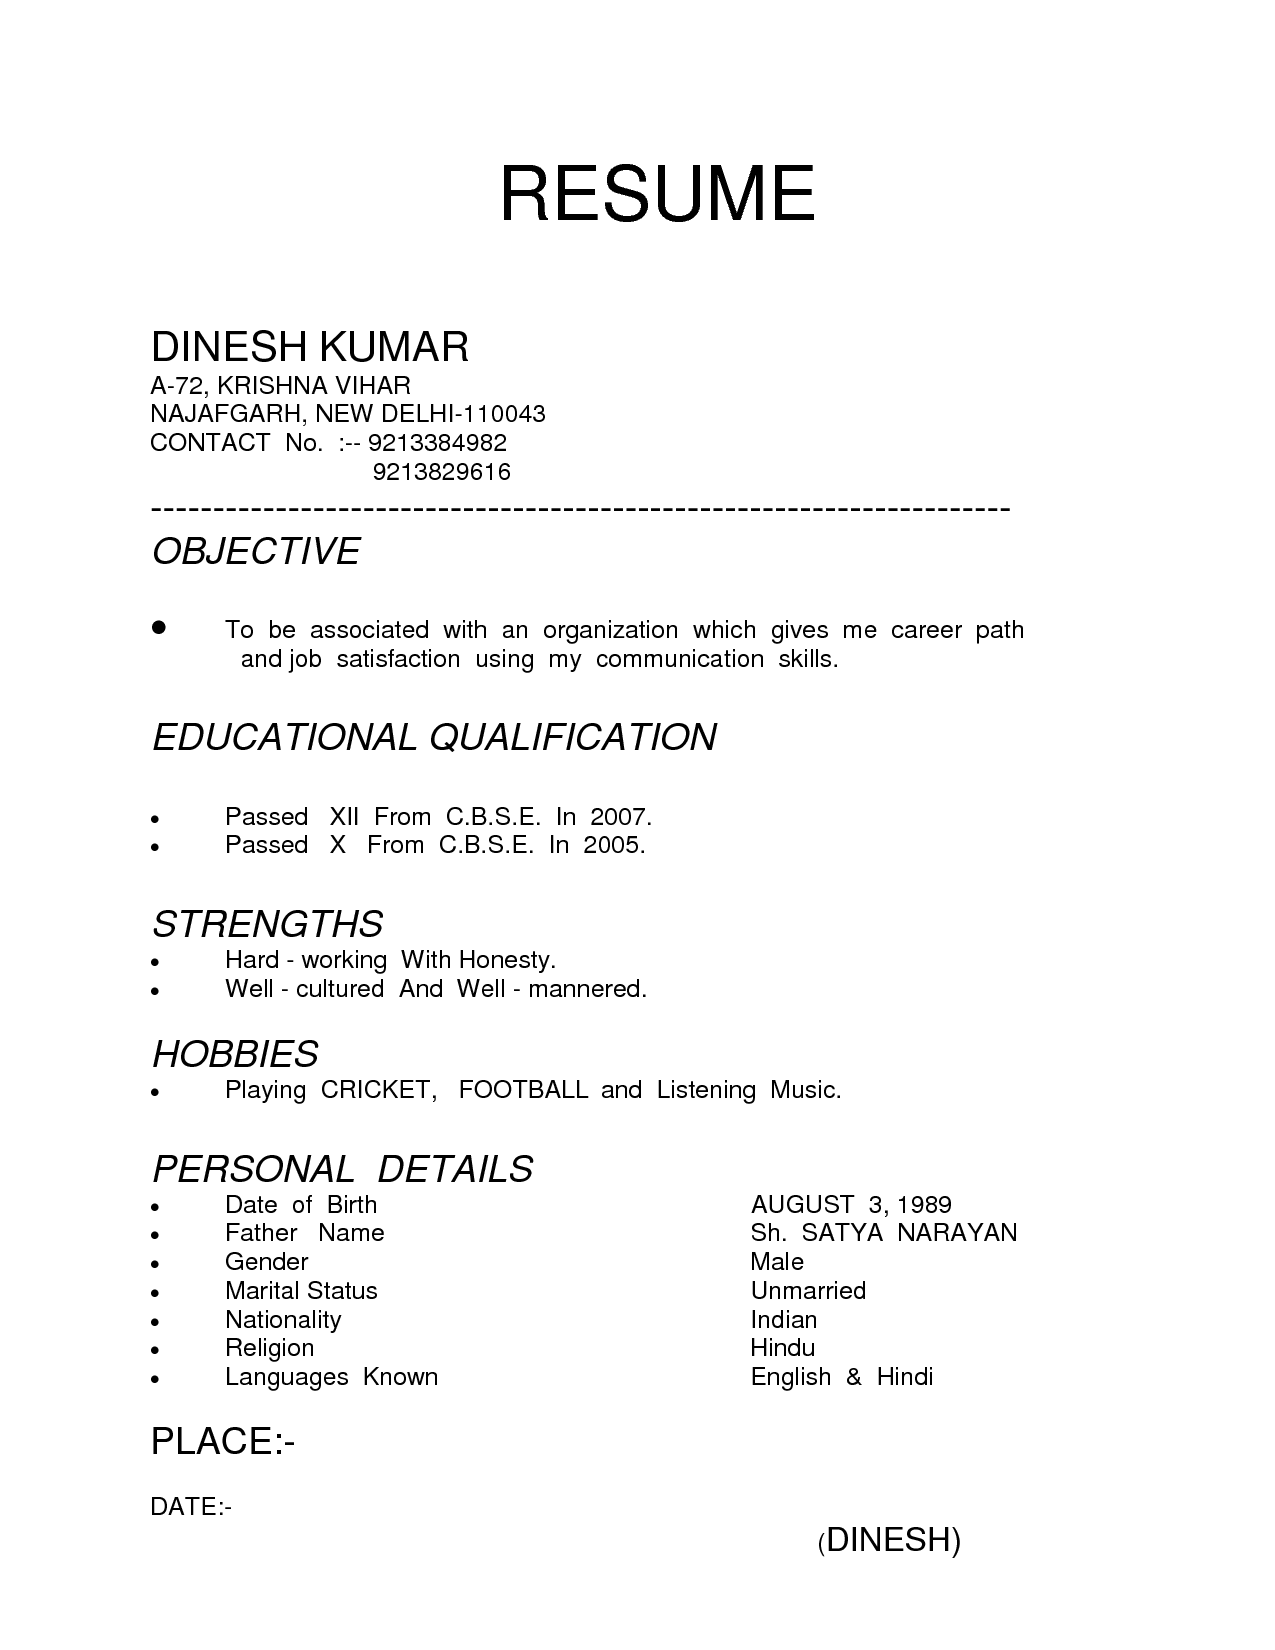 Types Of Resume Templates Kinds Of 4 Resume Examples Resume Format Sample Resume